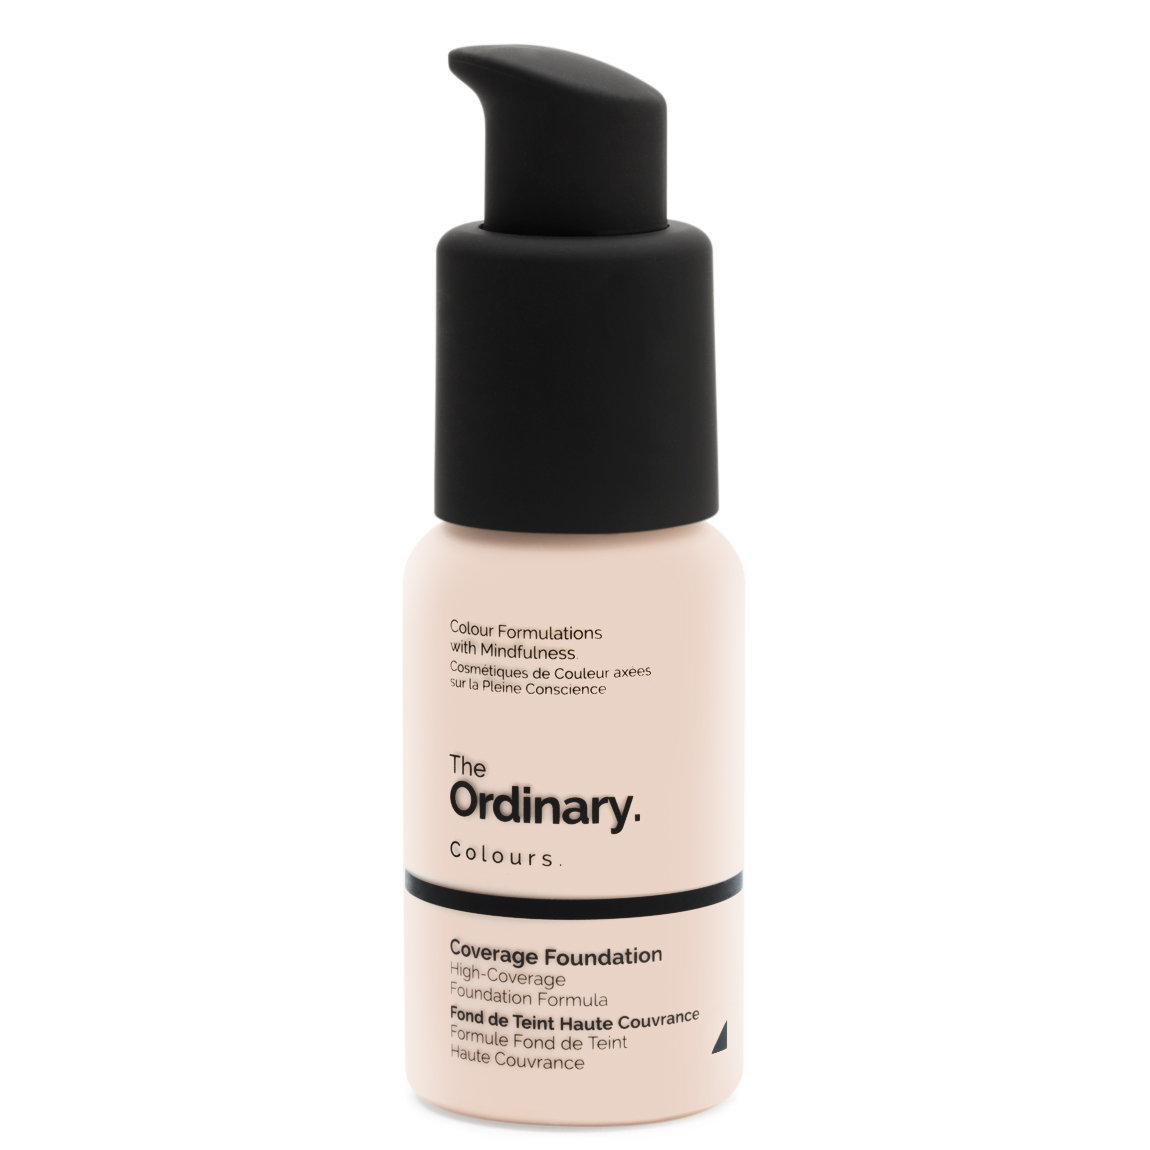 The Ordinary. Coverage Foundation 1.0N